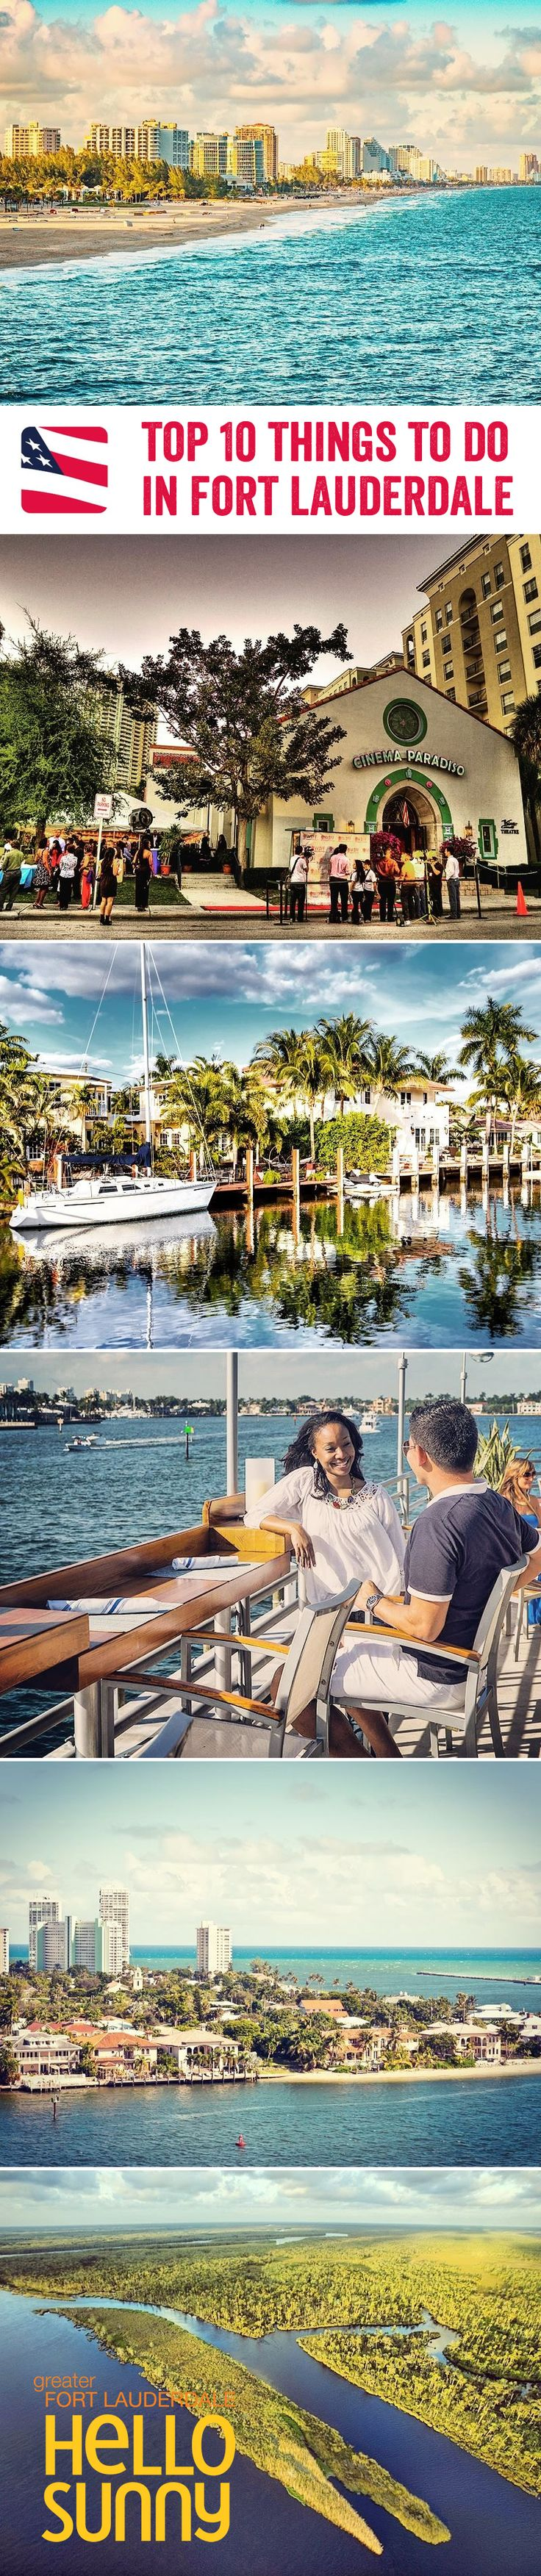 With endless sunshine, a lively atmosphere and so much to do, it's no wonder Fort Lauderdale is a popular holiday spot. From fascinating museums and beautiful parks, to delicious al fresco restaurants and the bustling Intracoastal Waterway, here are our top 10 things to do in this fun city